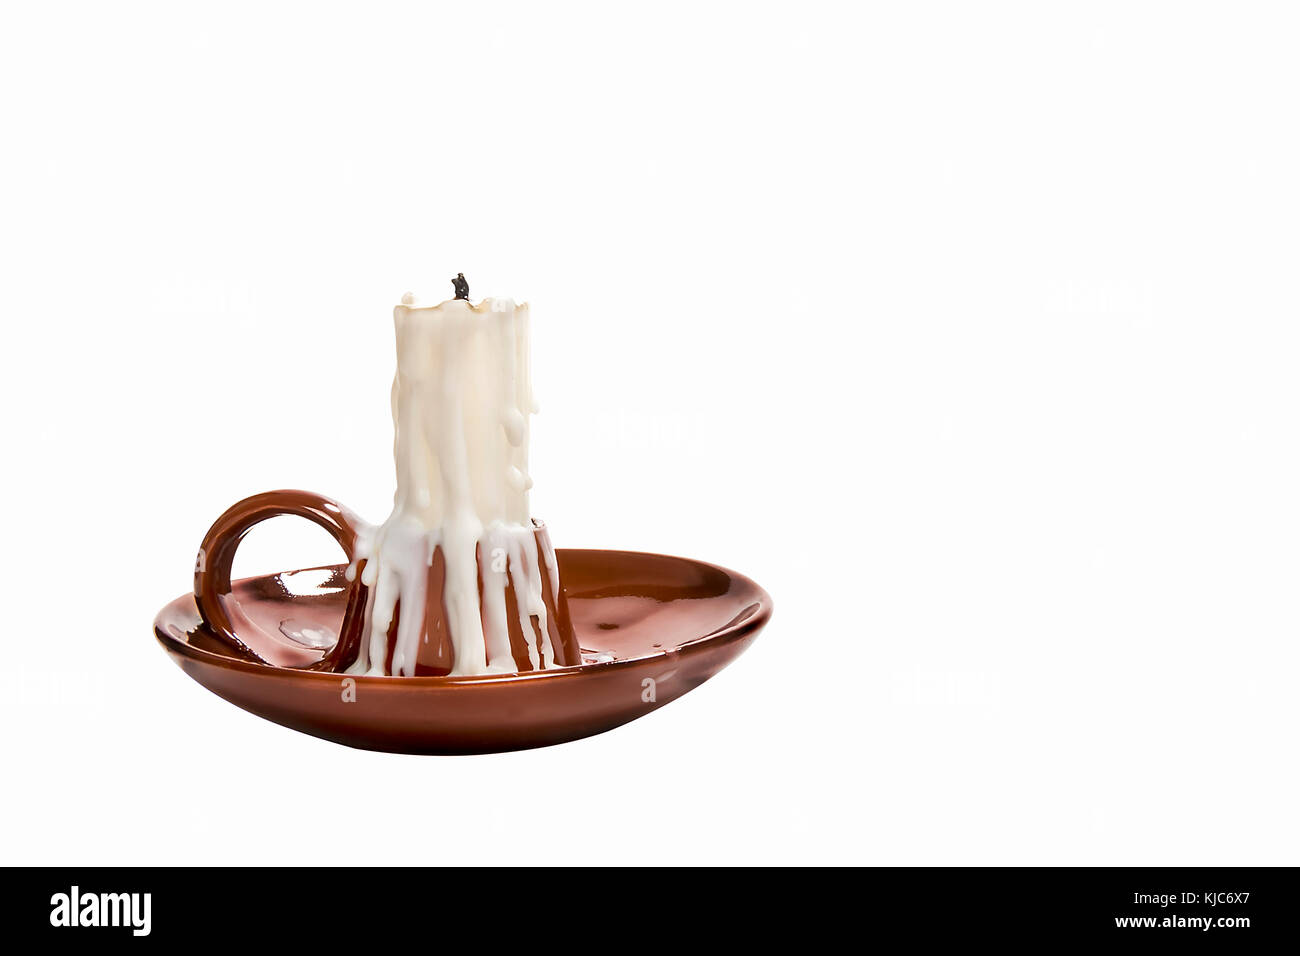 unlit candle in candlestick on white background - Stock Image